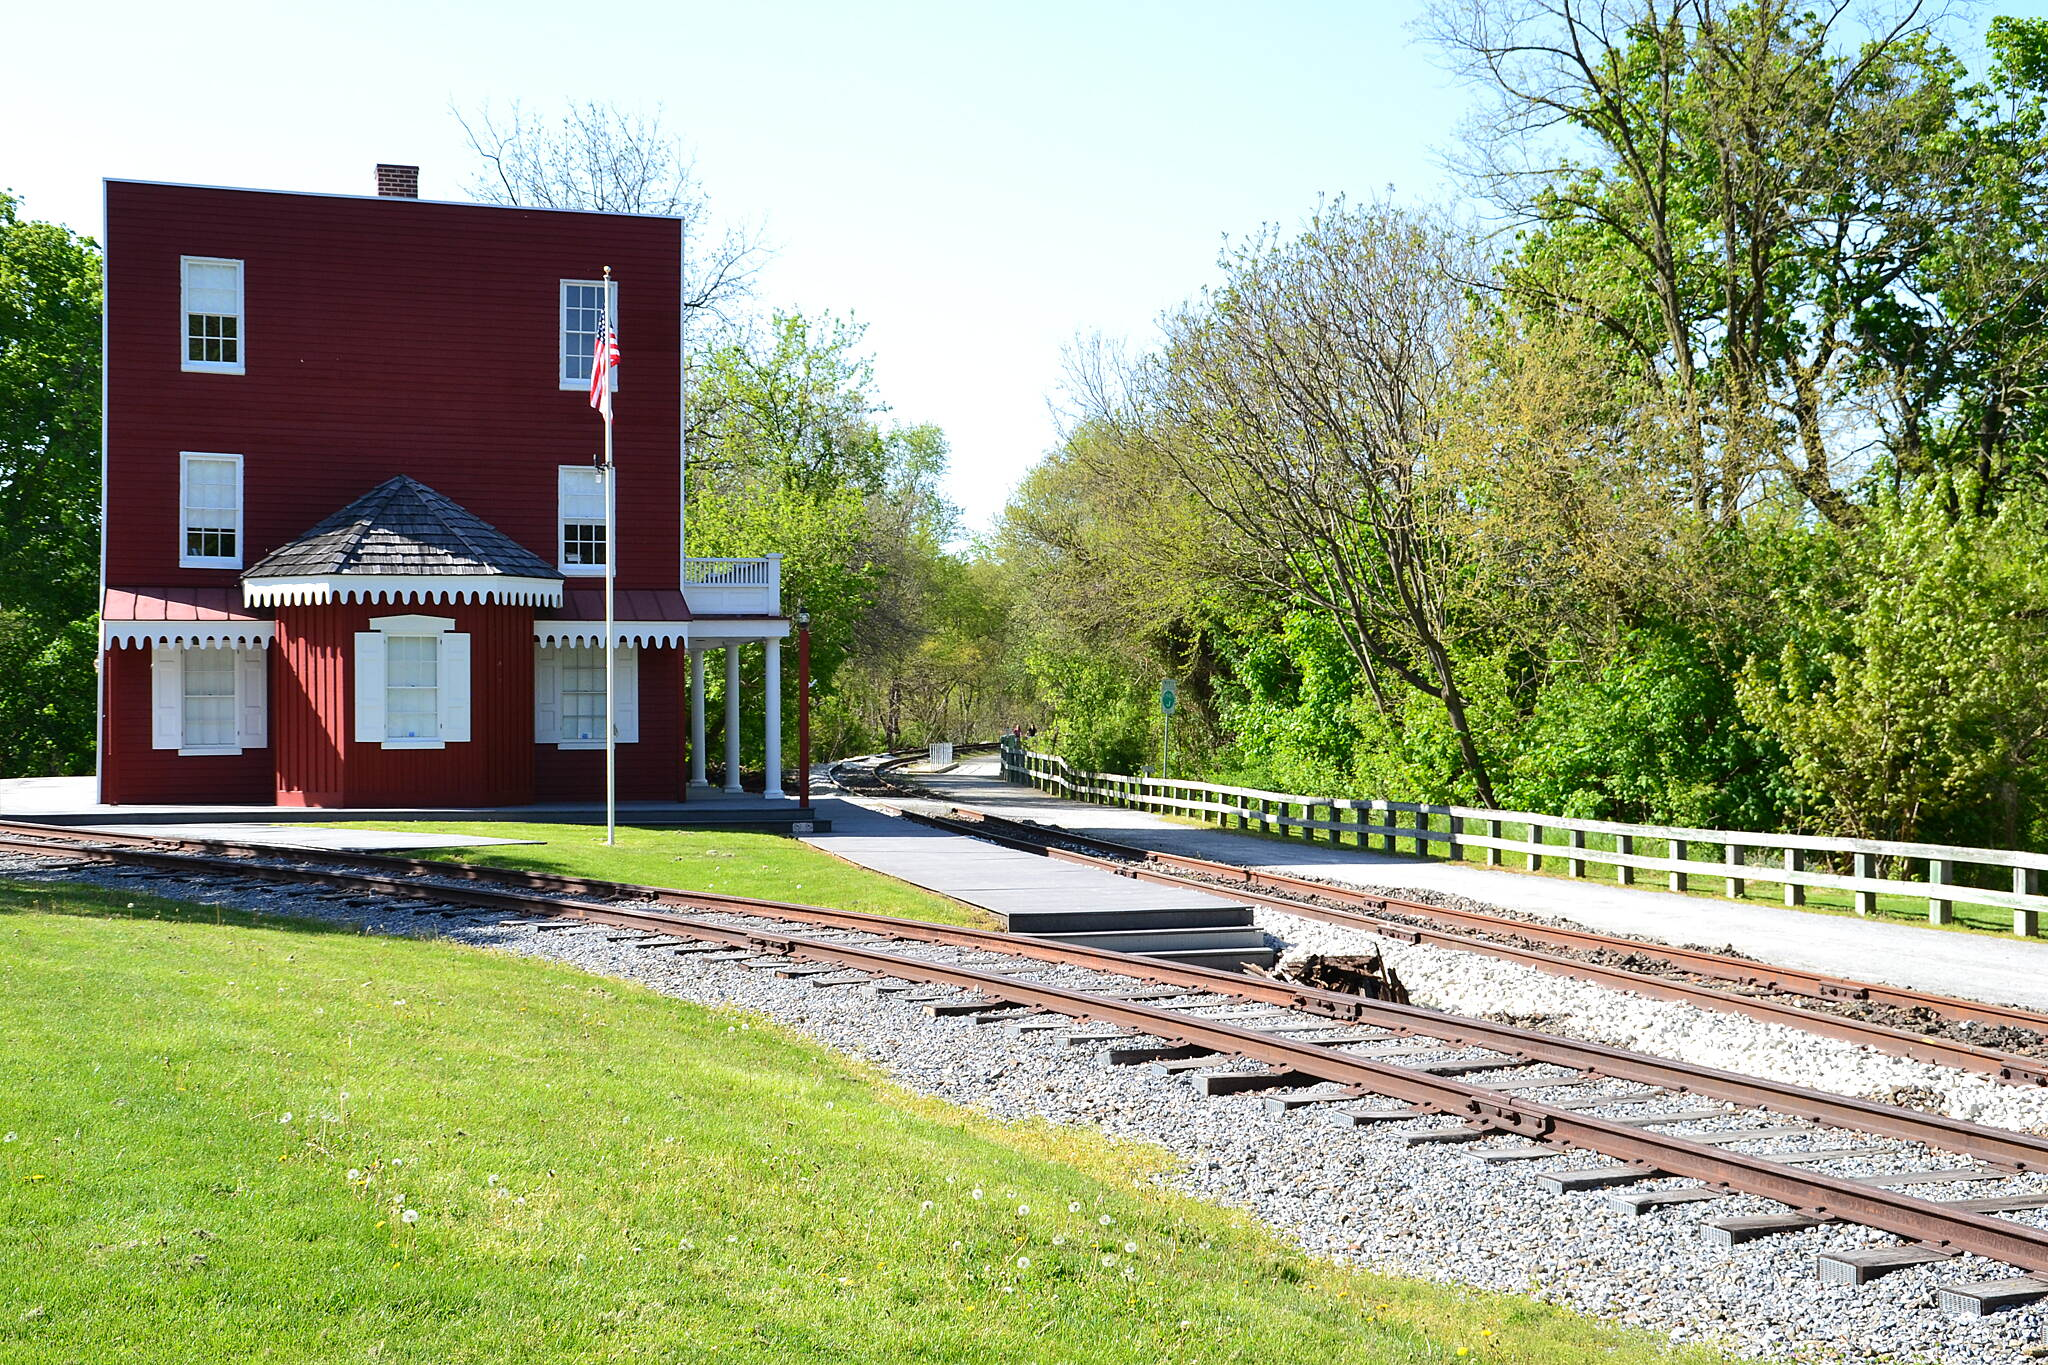 Heritage Rail Trail County Park Hanover Junction Railroad Station Hanover Junction Railroad Station, taken from just south of the station on May 5th, 2013.